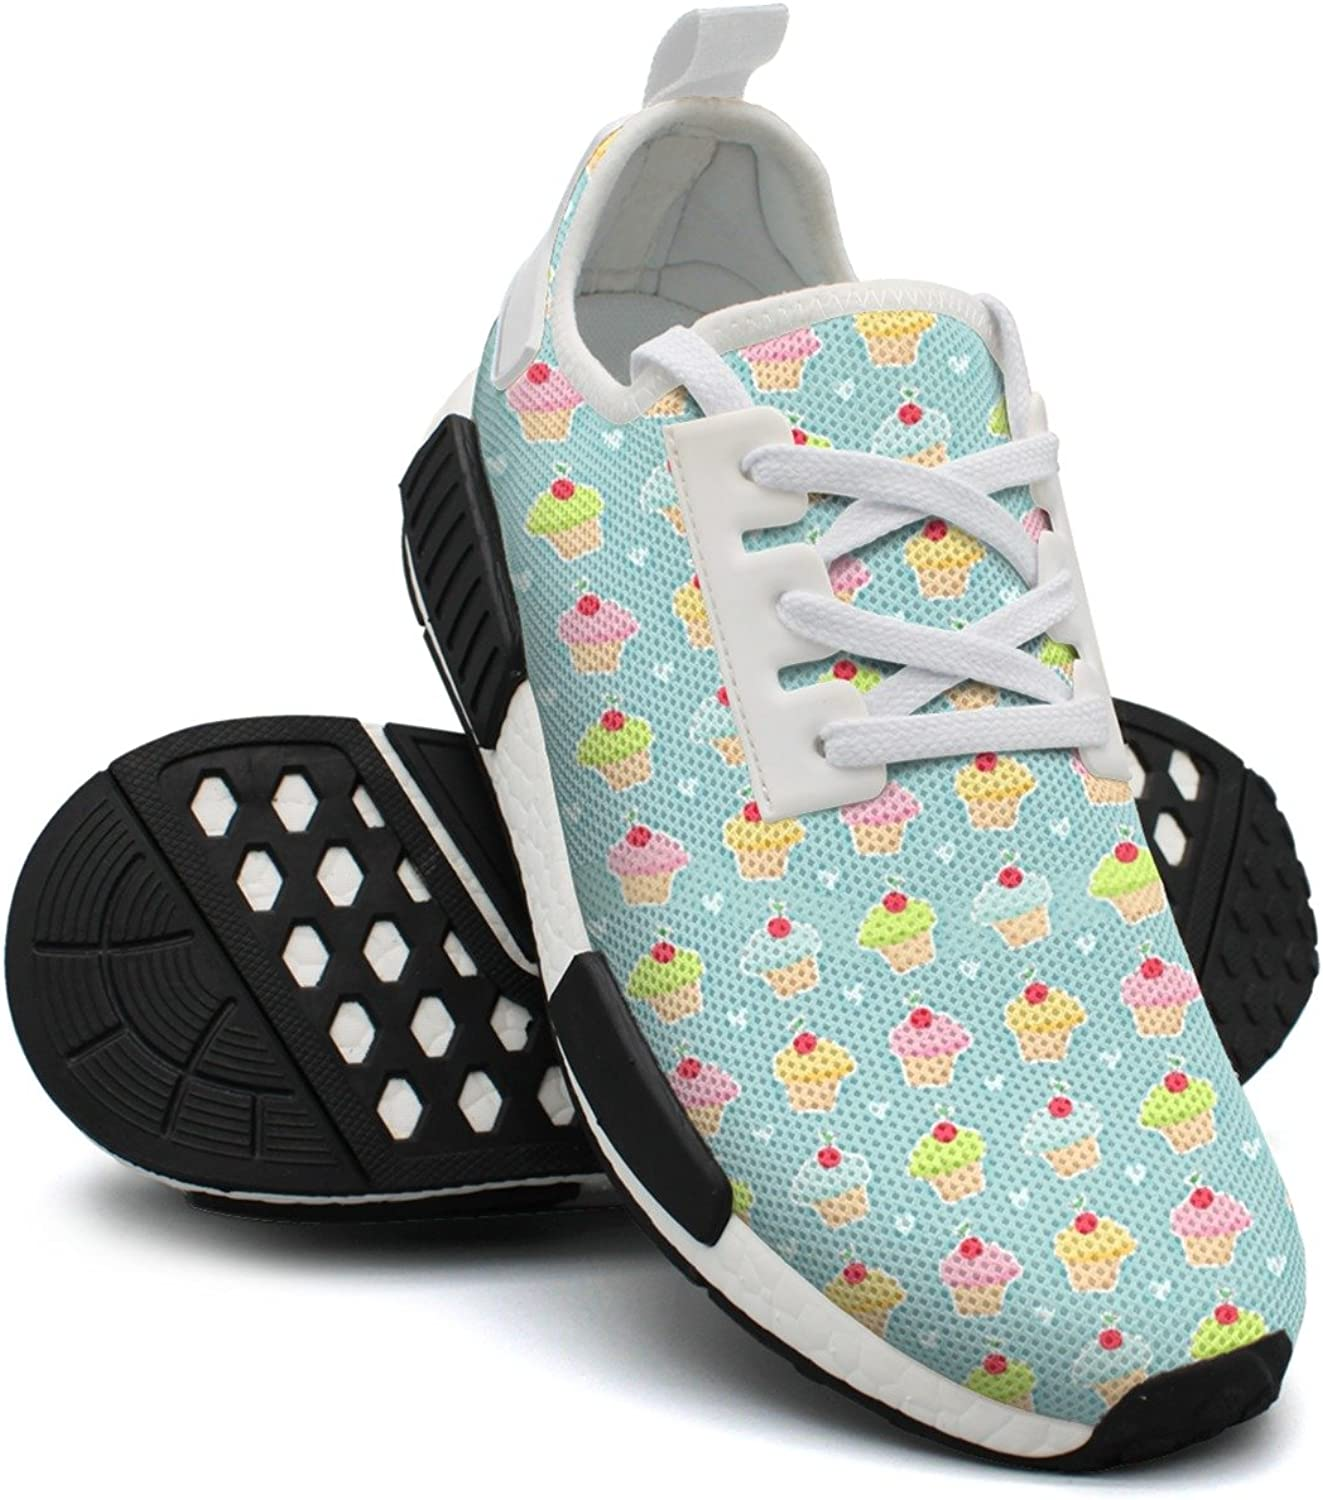 Cupcakes and Hearts Women's Exclusive Lightweight Volleyball Sneakers Gym Outdoor Running shoes